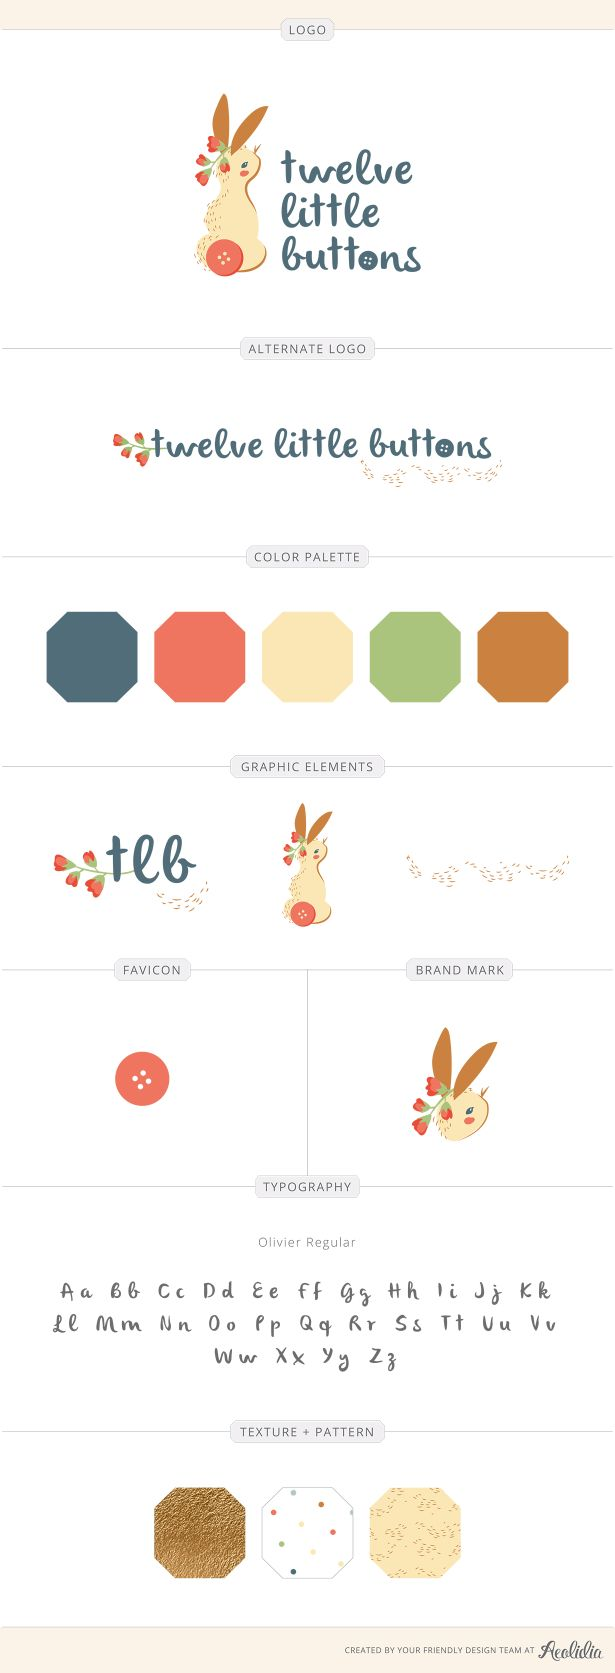 Twelve Little Buttons brand identity by Sarah Enid Connor for Aeolidia